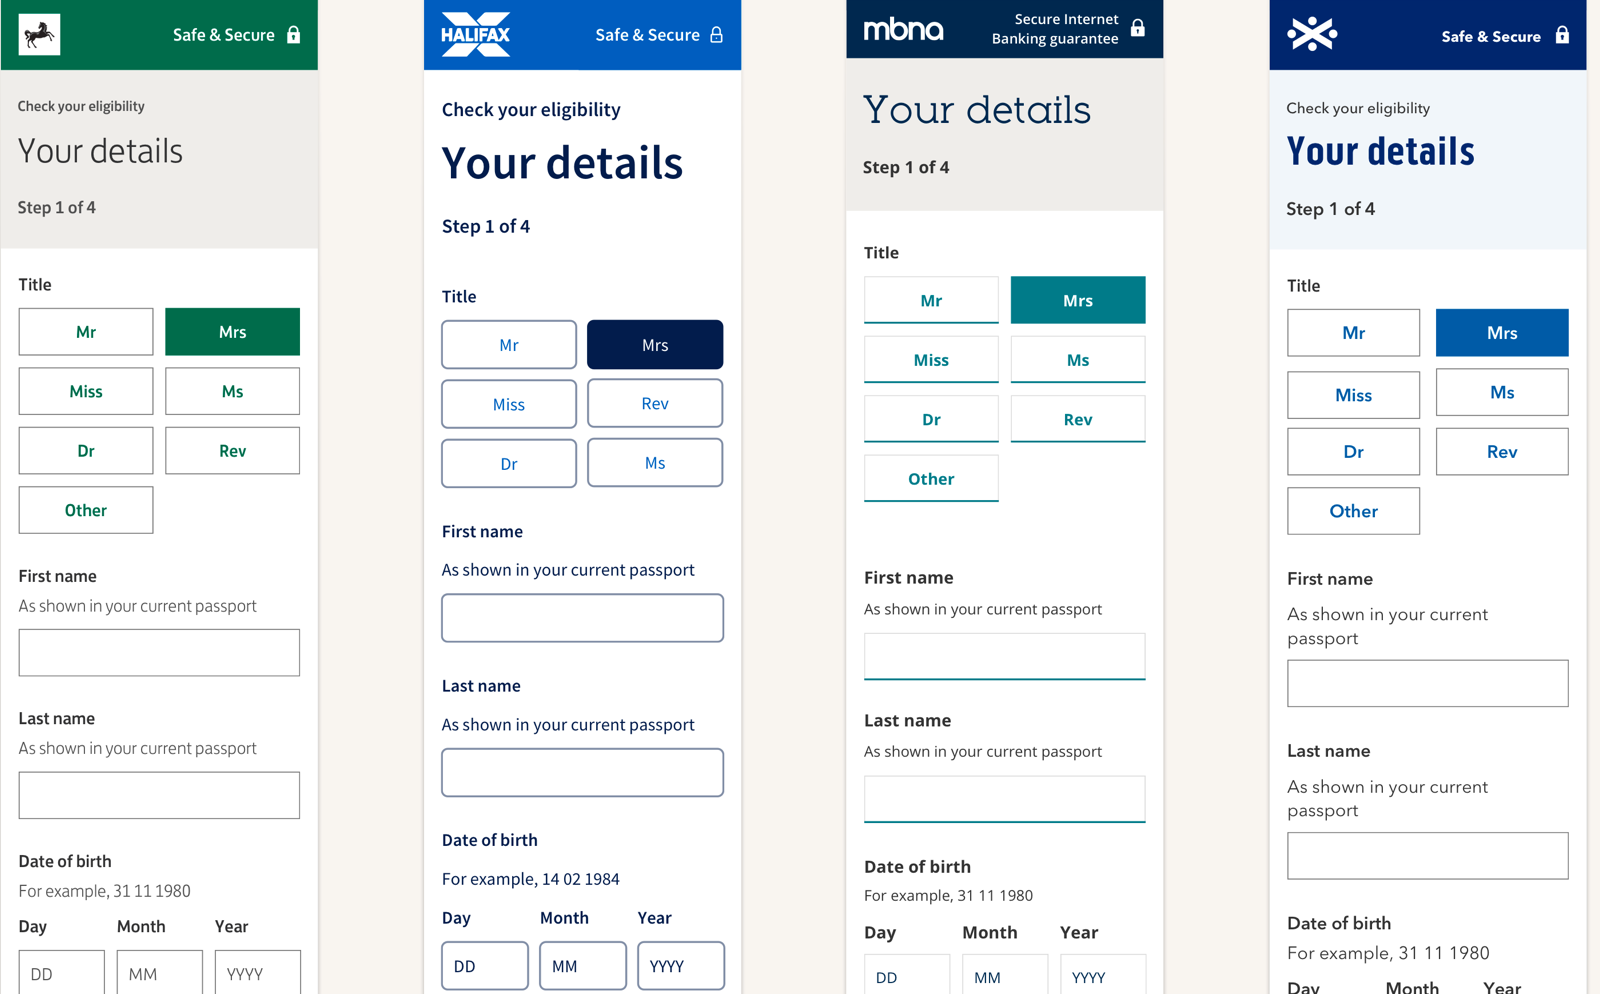 Image showing a screen shot of a bank eligibility screen in 4 different brands.